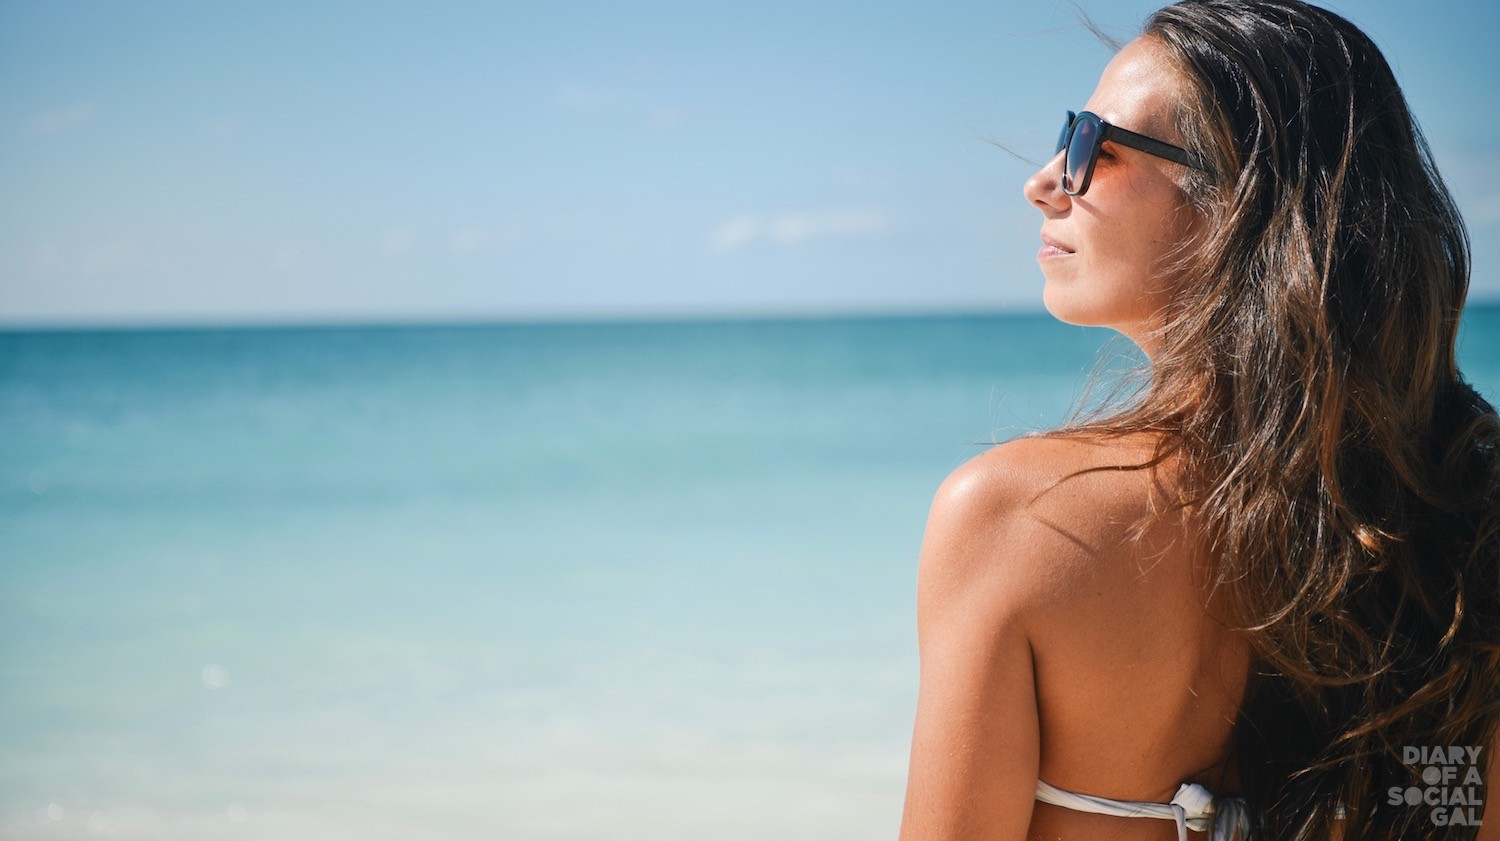 Girl In Bikini Wearing Sunglasses On A Beach Looking At The Sun (1)